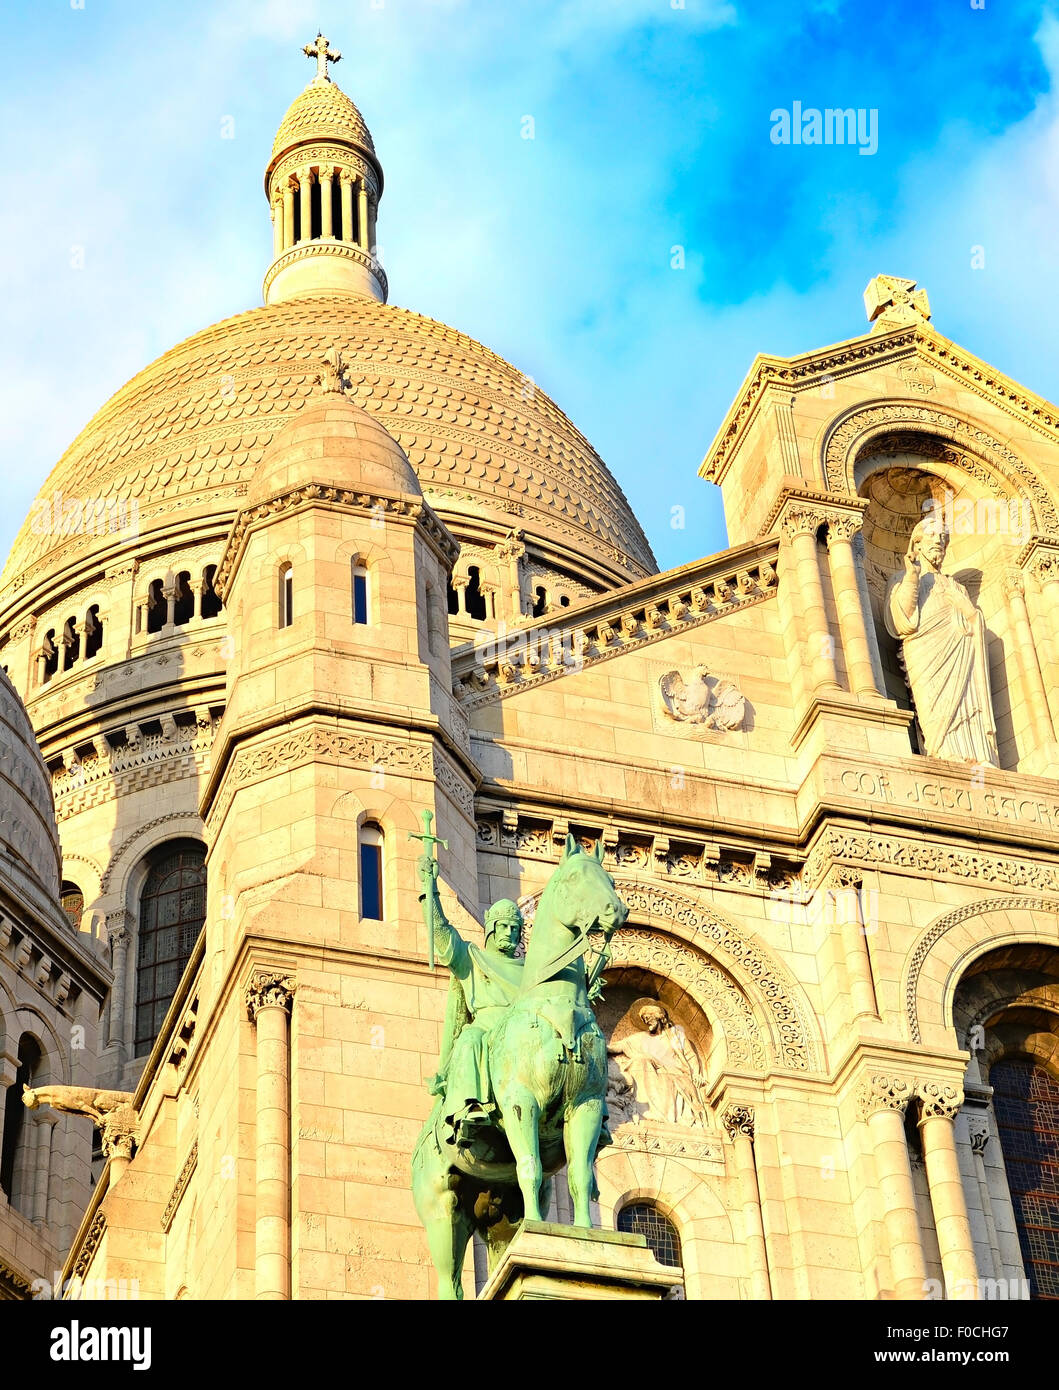 Details of the Basilica of the Sacred Heart of Jesus on Montmartre hill, Paris - Stock Image